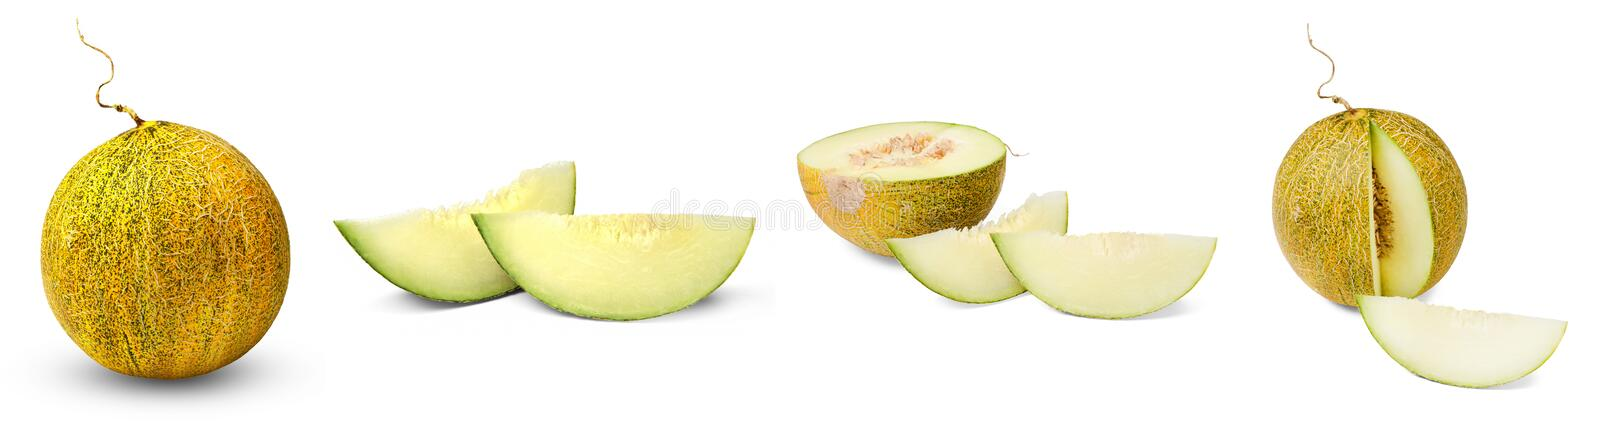 Melon set. Whole, half, lobule. Isolation on a white background. Side view. Bright saturated colors and good texture royalty free stock photo